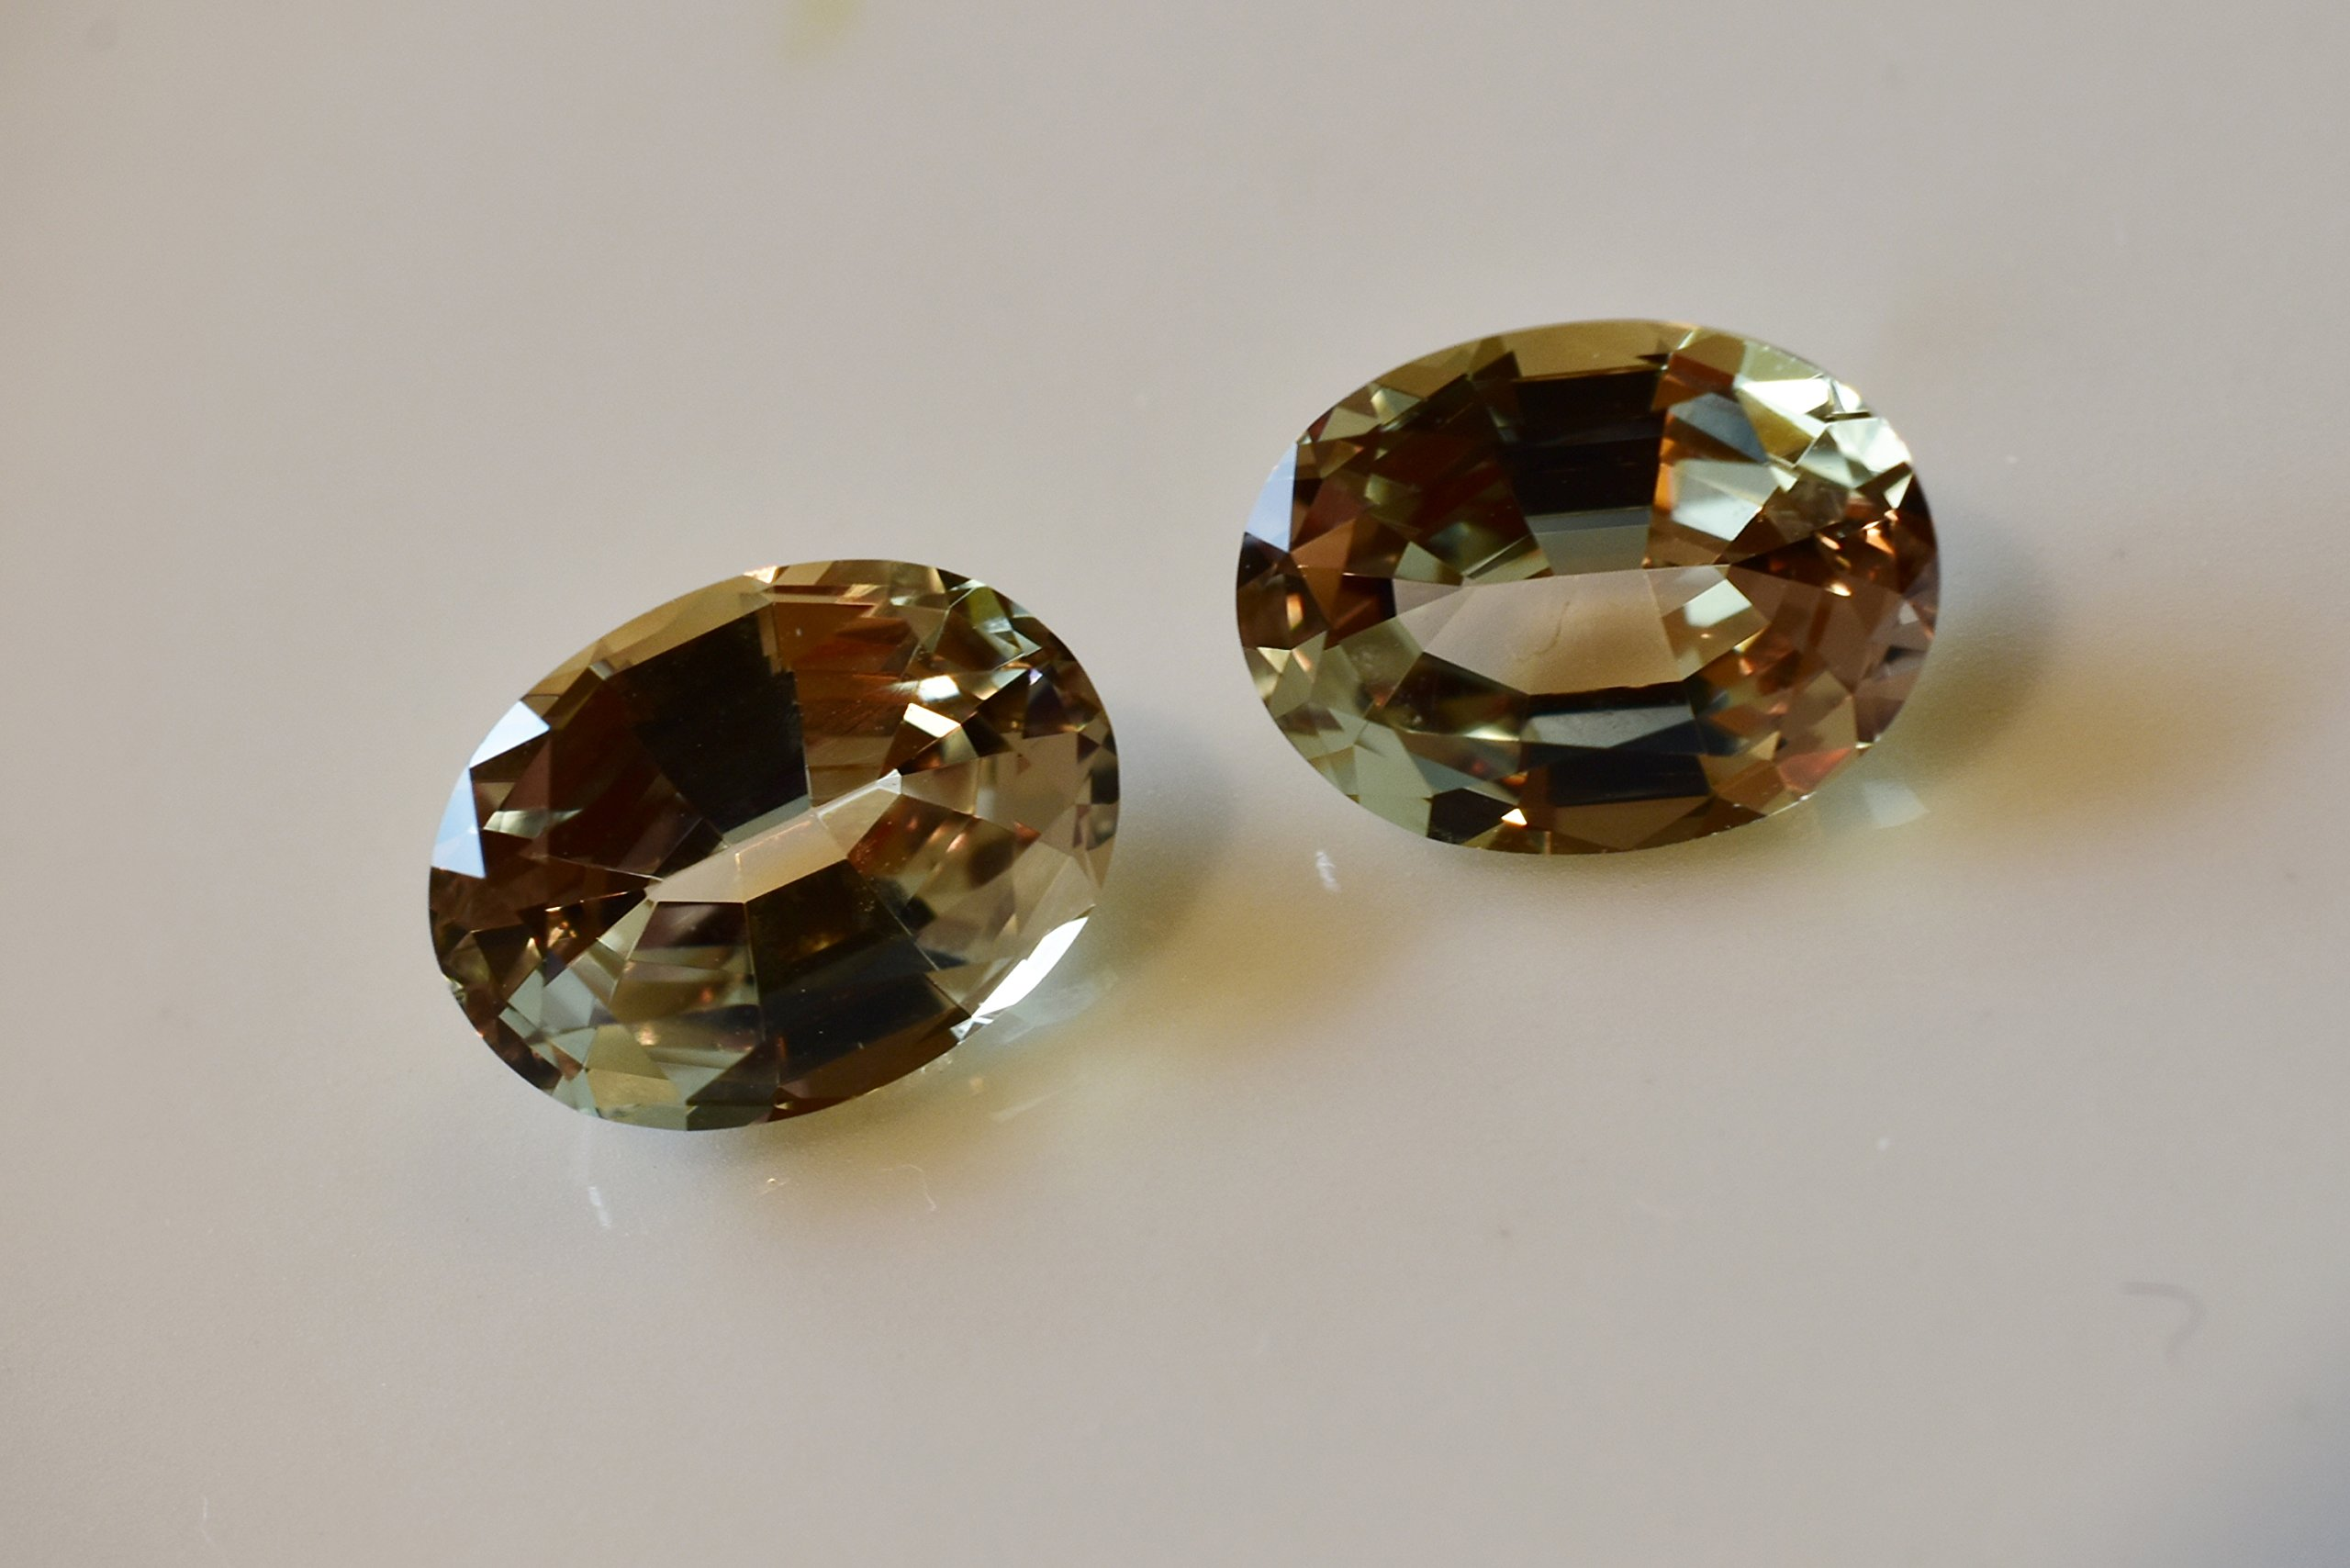 Zultanite (1) 1.37 Ct Natural Loose Gem 8x6mm Oval Cut Cert of Auth G011 by Zultanite (Image #4)